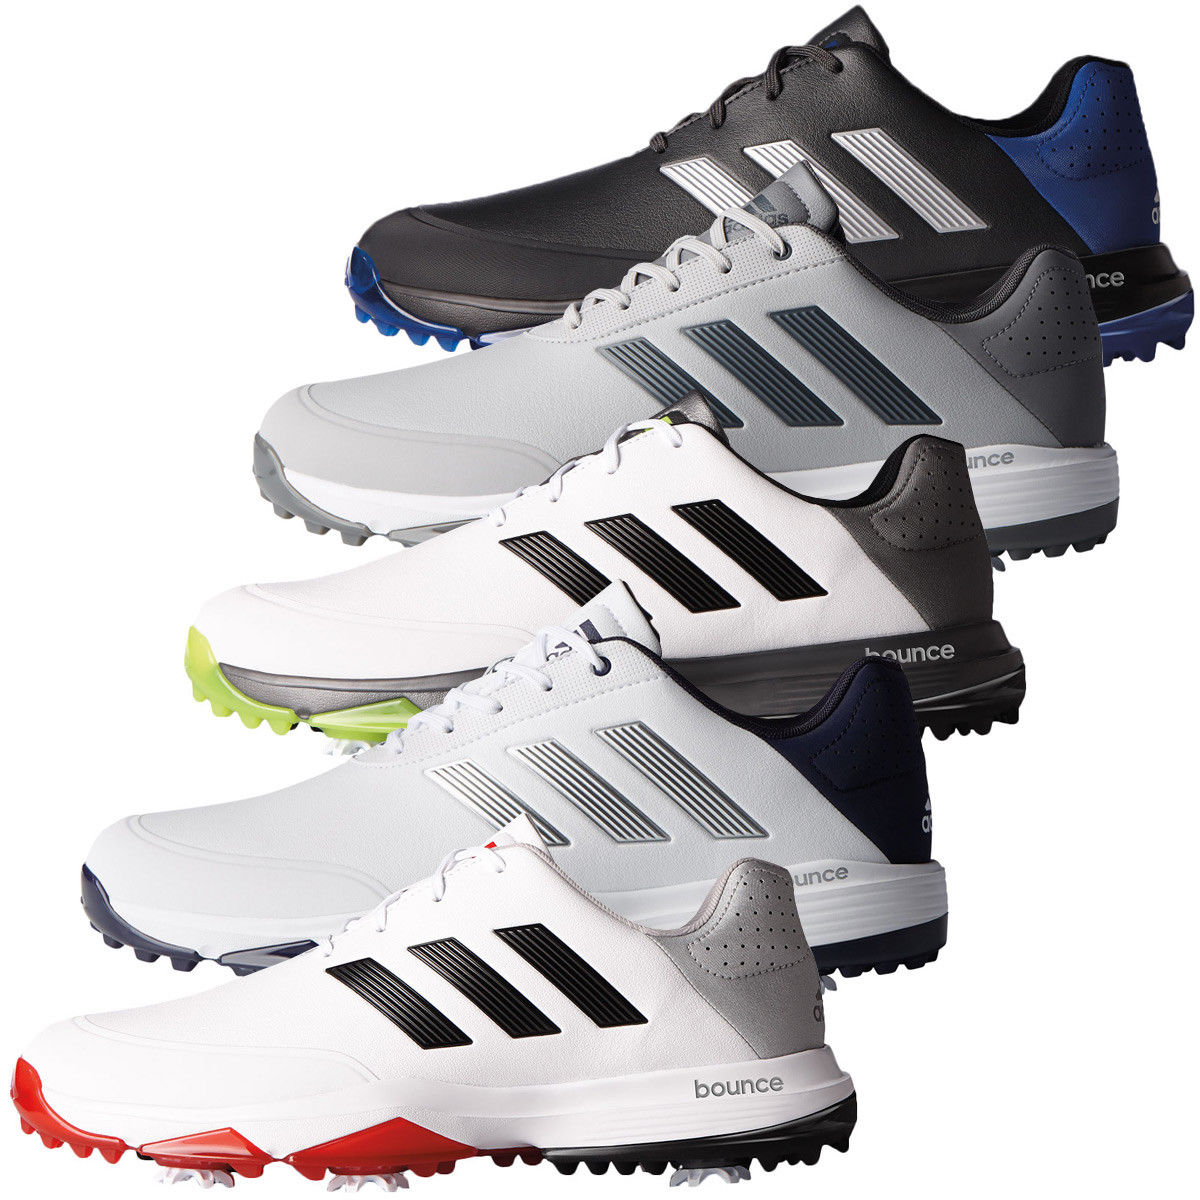 Golfing shoes image